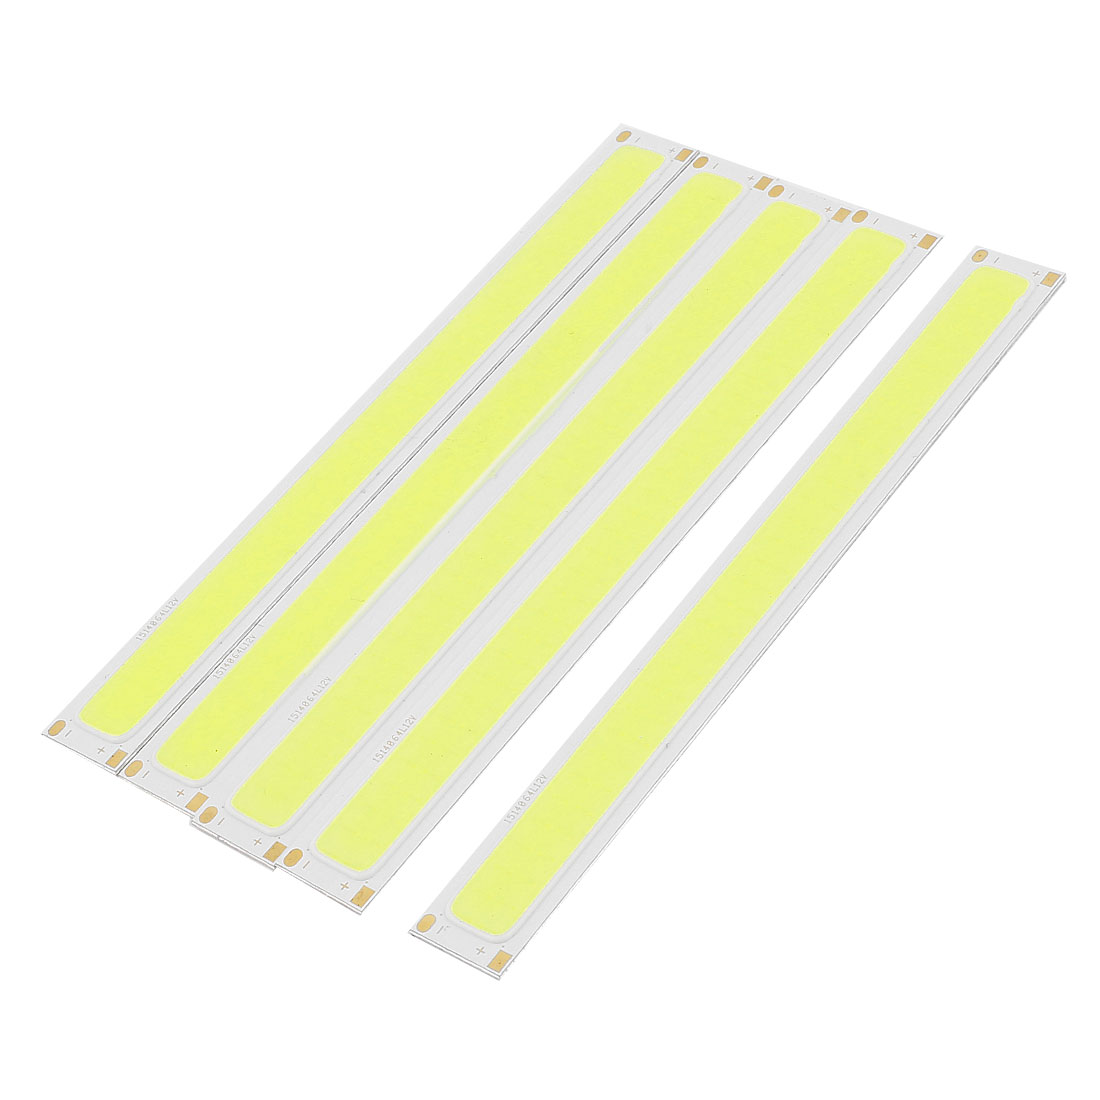 4W DC12-14V 300mA 80-90LM/W White LED Light COB Lamp Bead Chip 5 Pcs